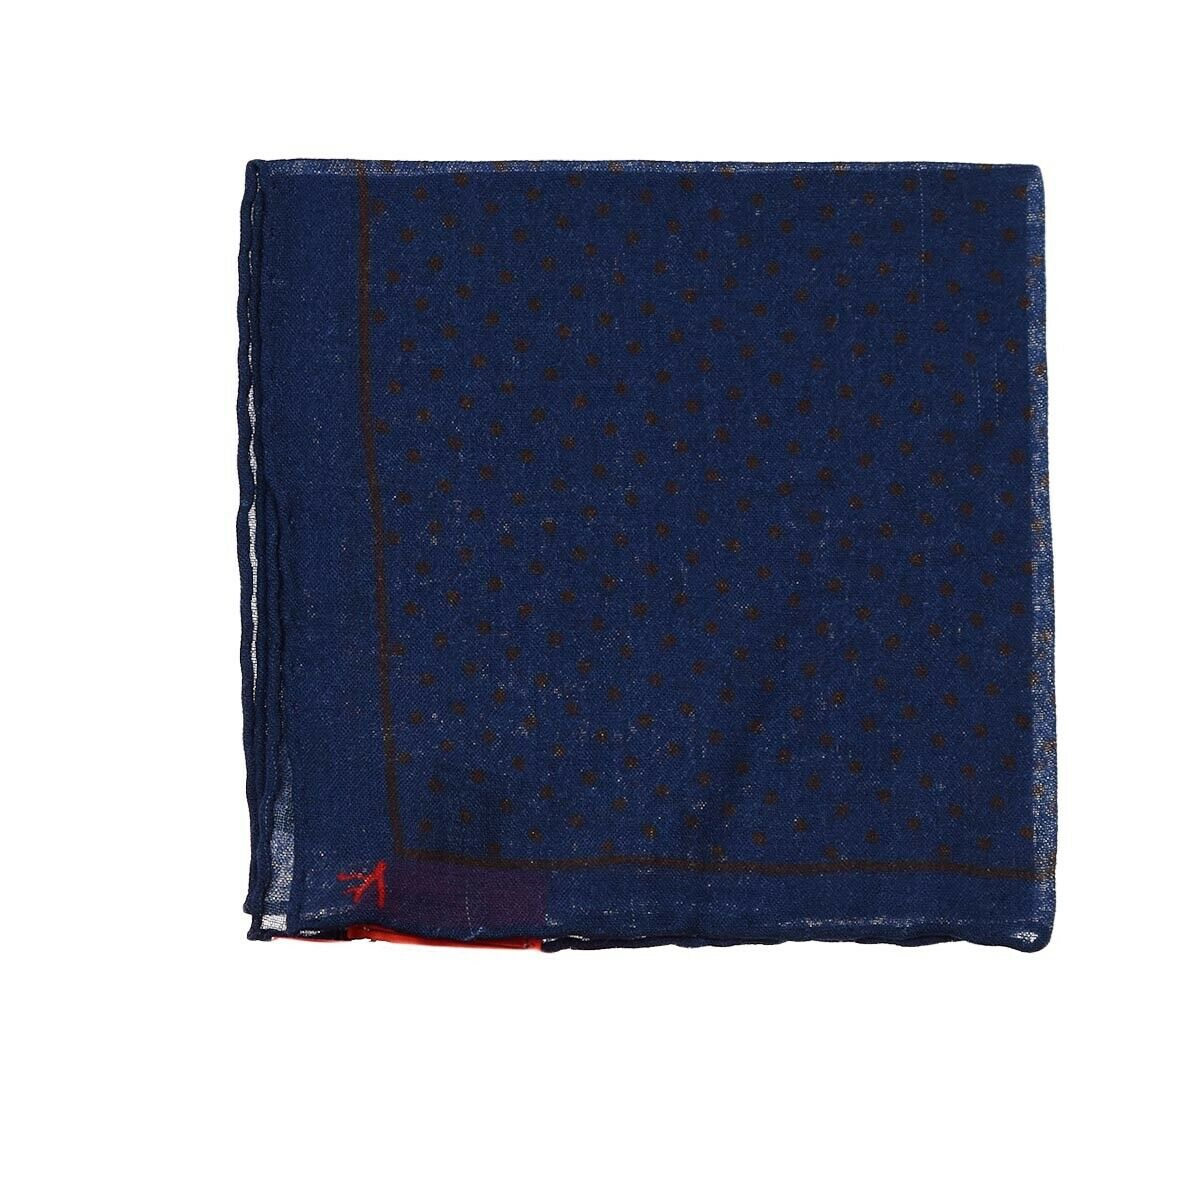 NEW ISAIA POCKET SQUARE 100% WOOL LITTLE IMPERFECTION 11.5